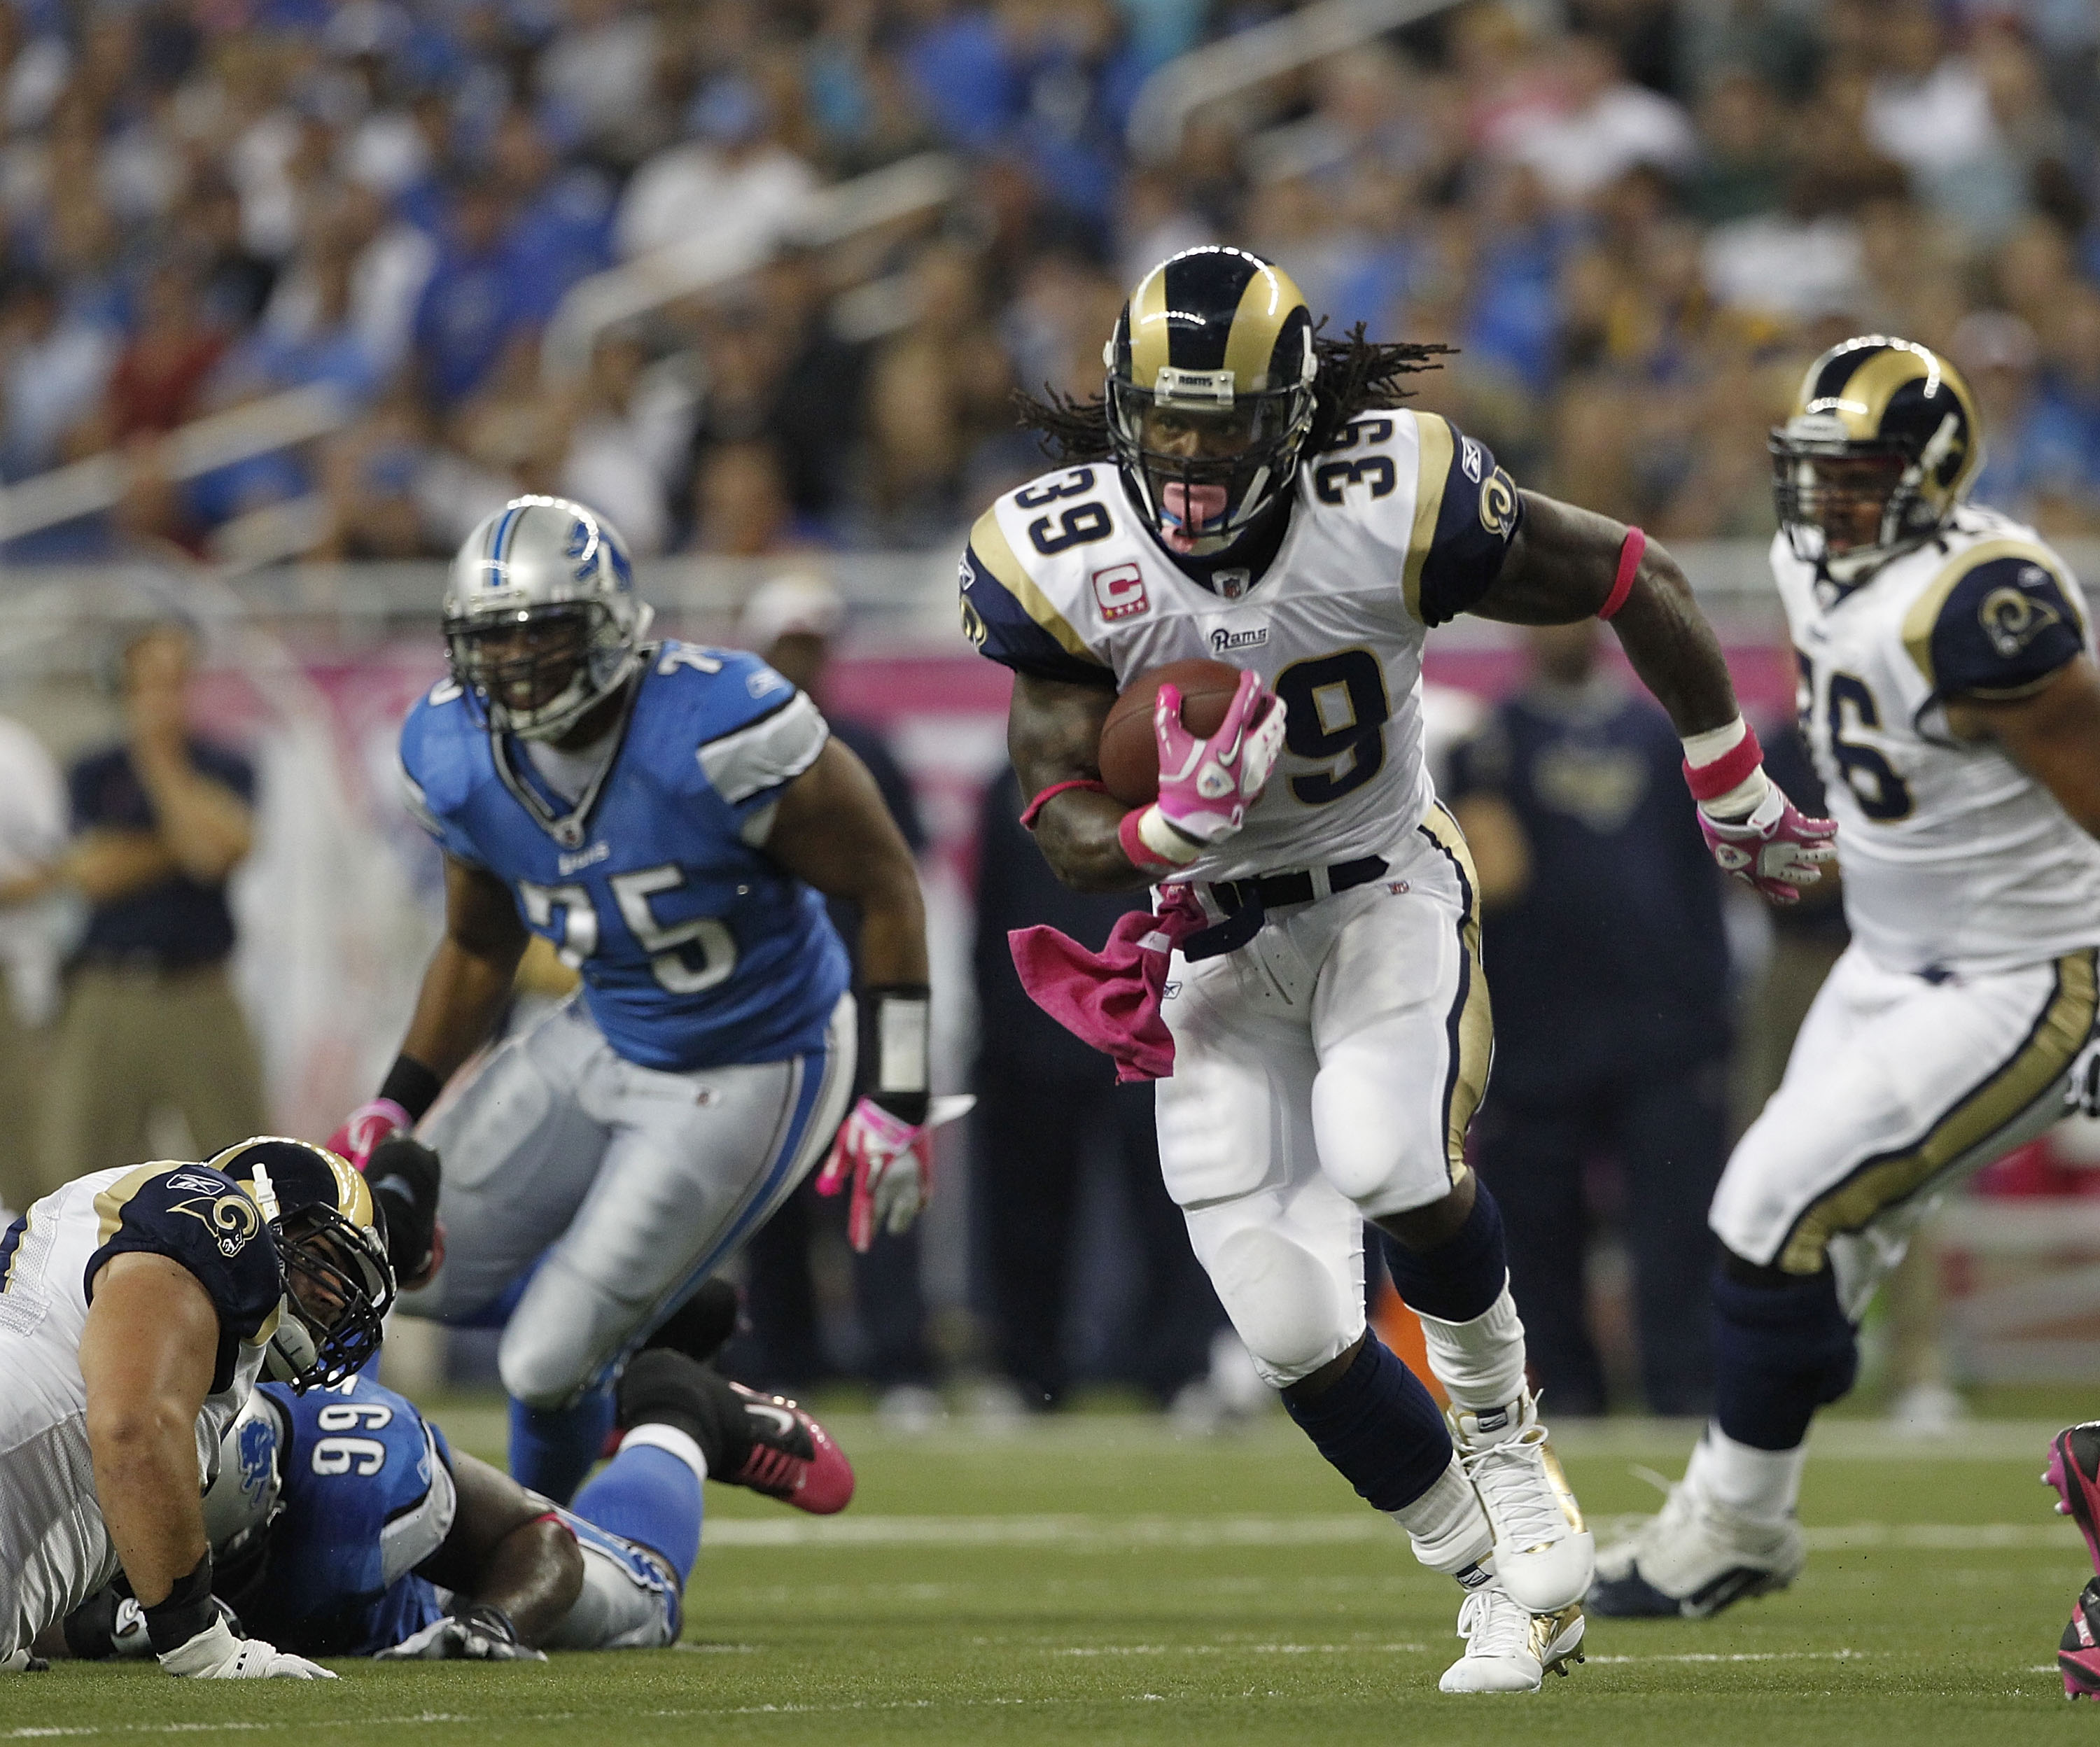 DETROIT - OCTOBER 10: Steven Jackson #39 of the St. Louis Rams runs for a first down during the game against the Detroit Lions at Ford Field on October 10, 2010 in Detroit, Michigan.  (Photo by Leon Halip/Getty Images)